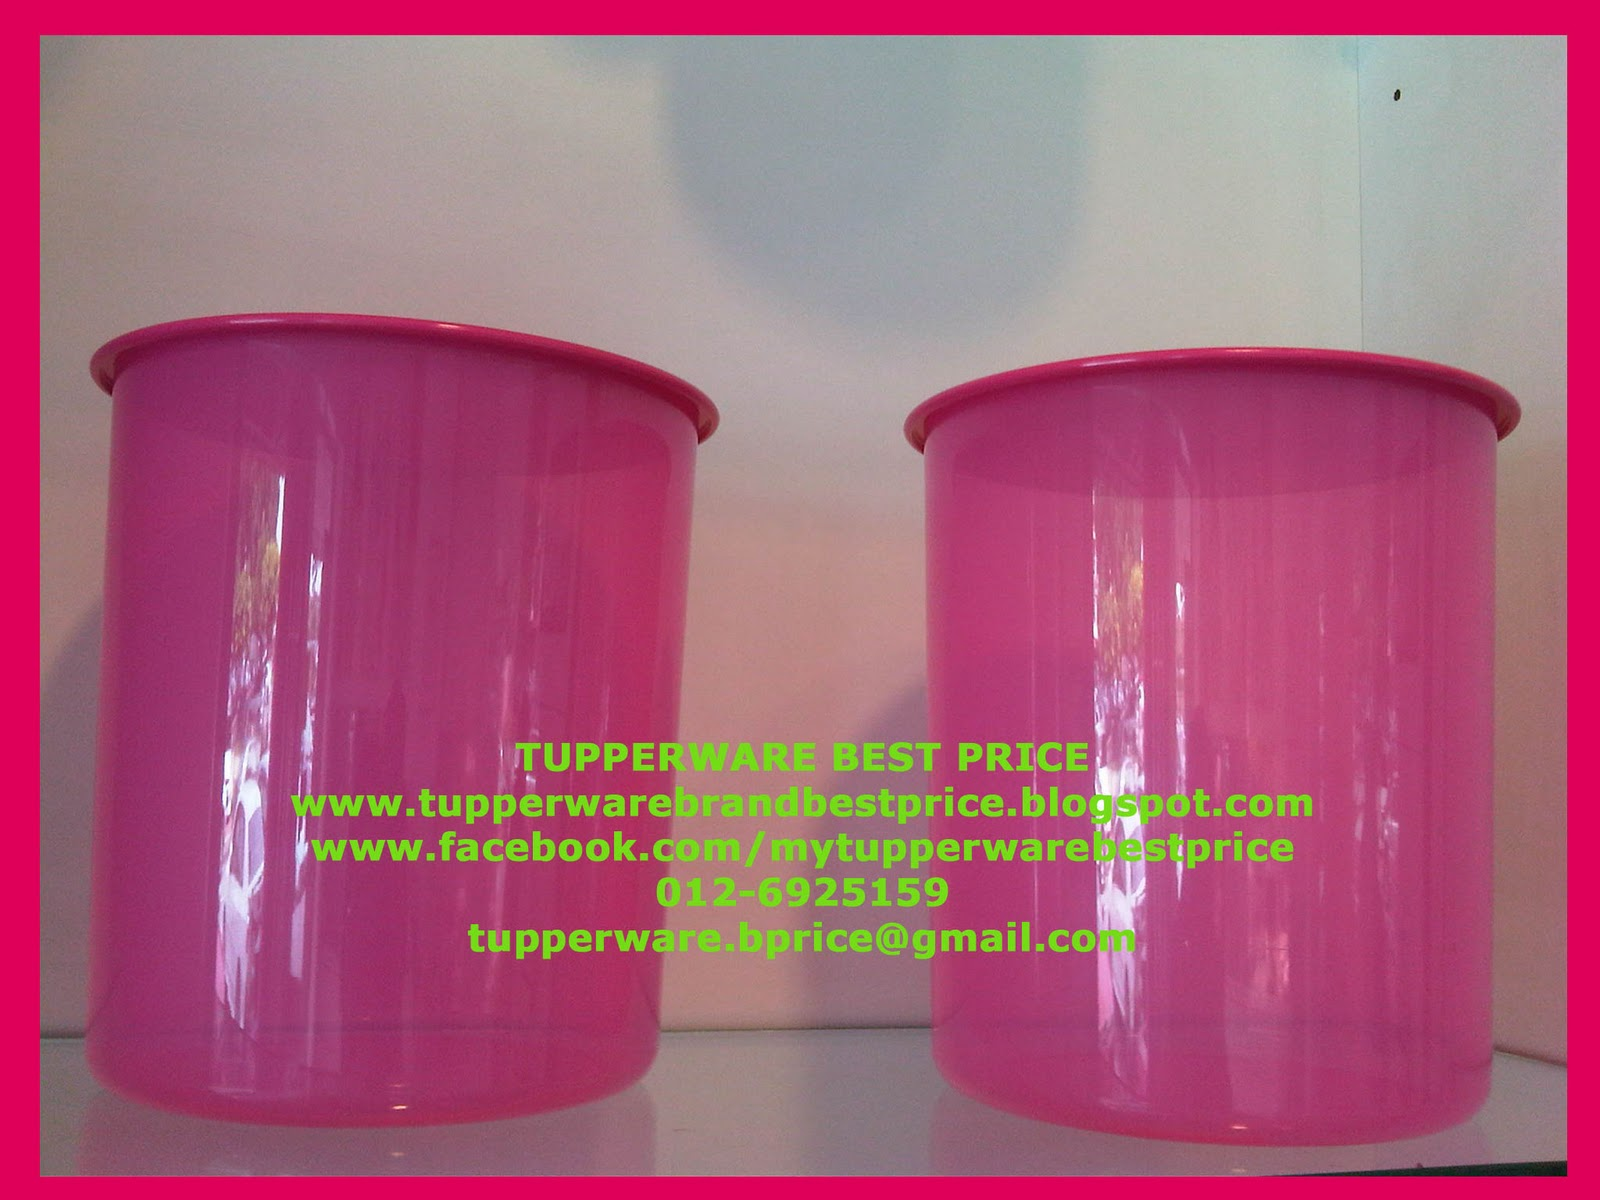 Cool Tupperware Kitchen Set Price In India Constructionhome Decor Gallery Image And Wallpaper Tupperware Images Mobile